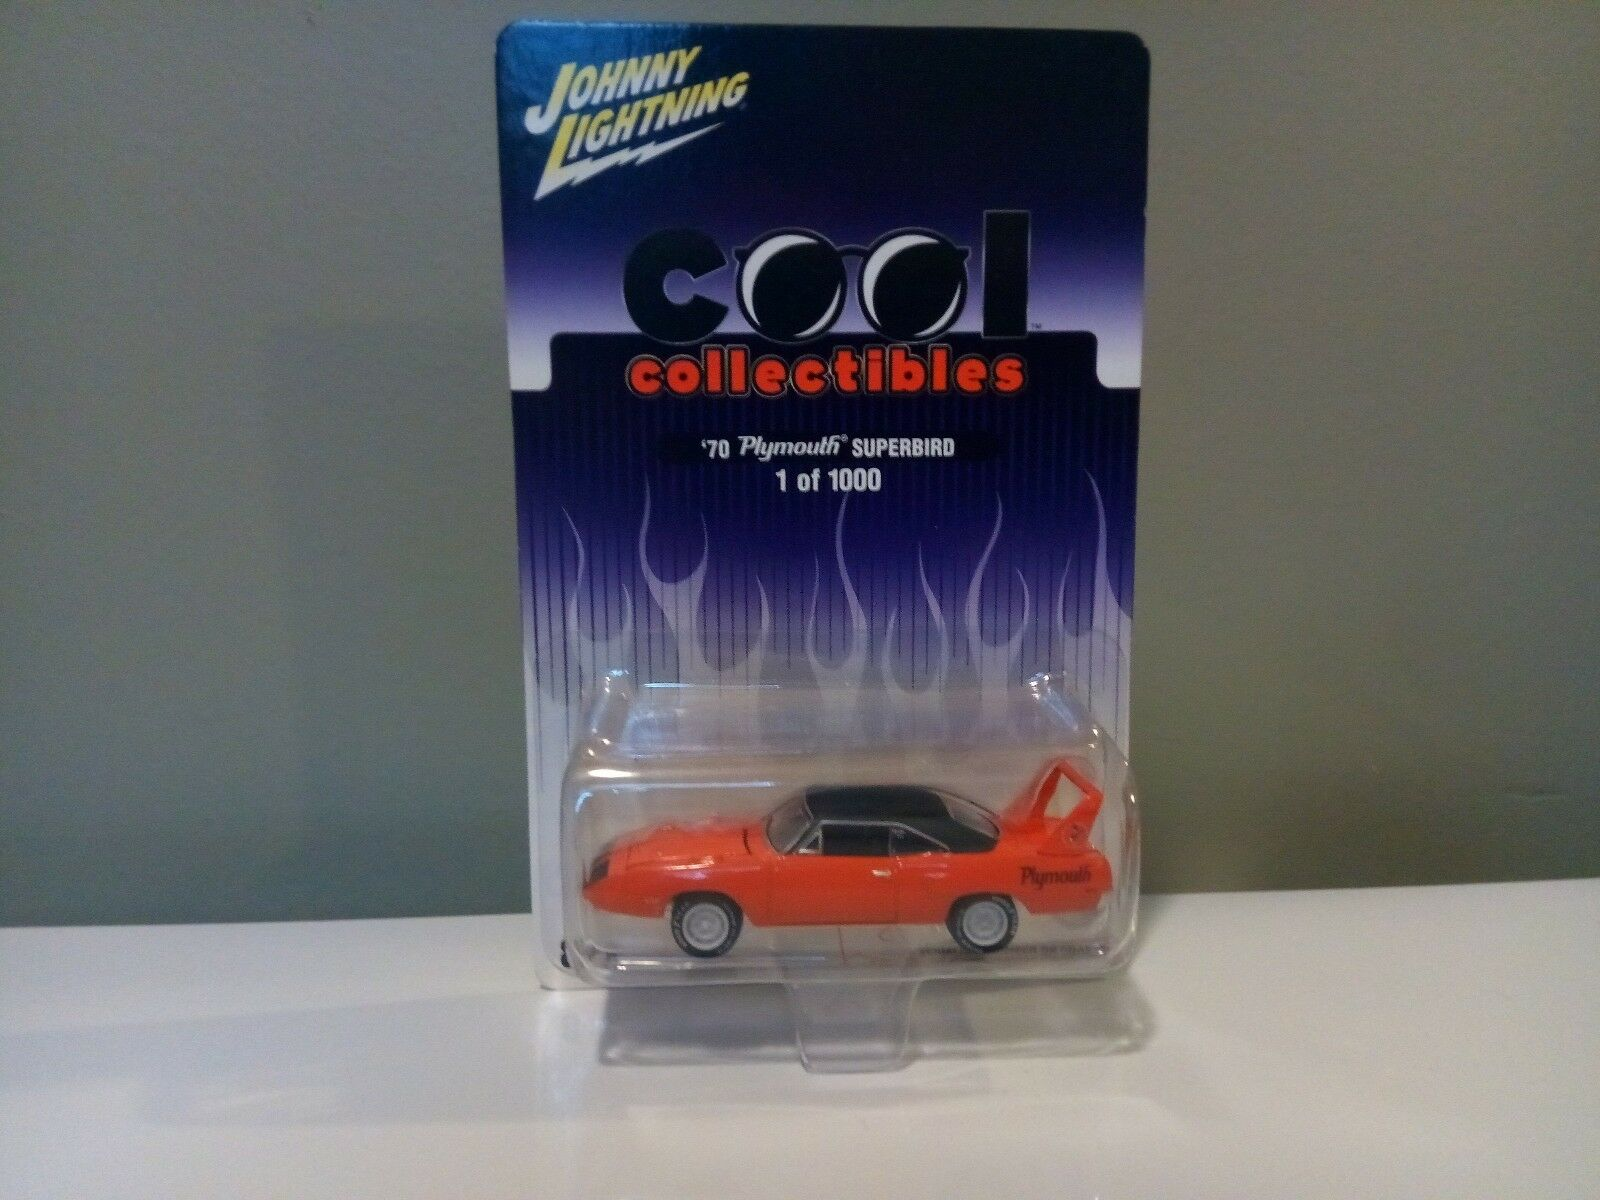 Johnny Lightning White Lightning Cool Collectibles 70 Plymouth Superbird